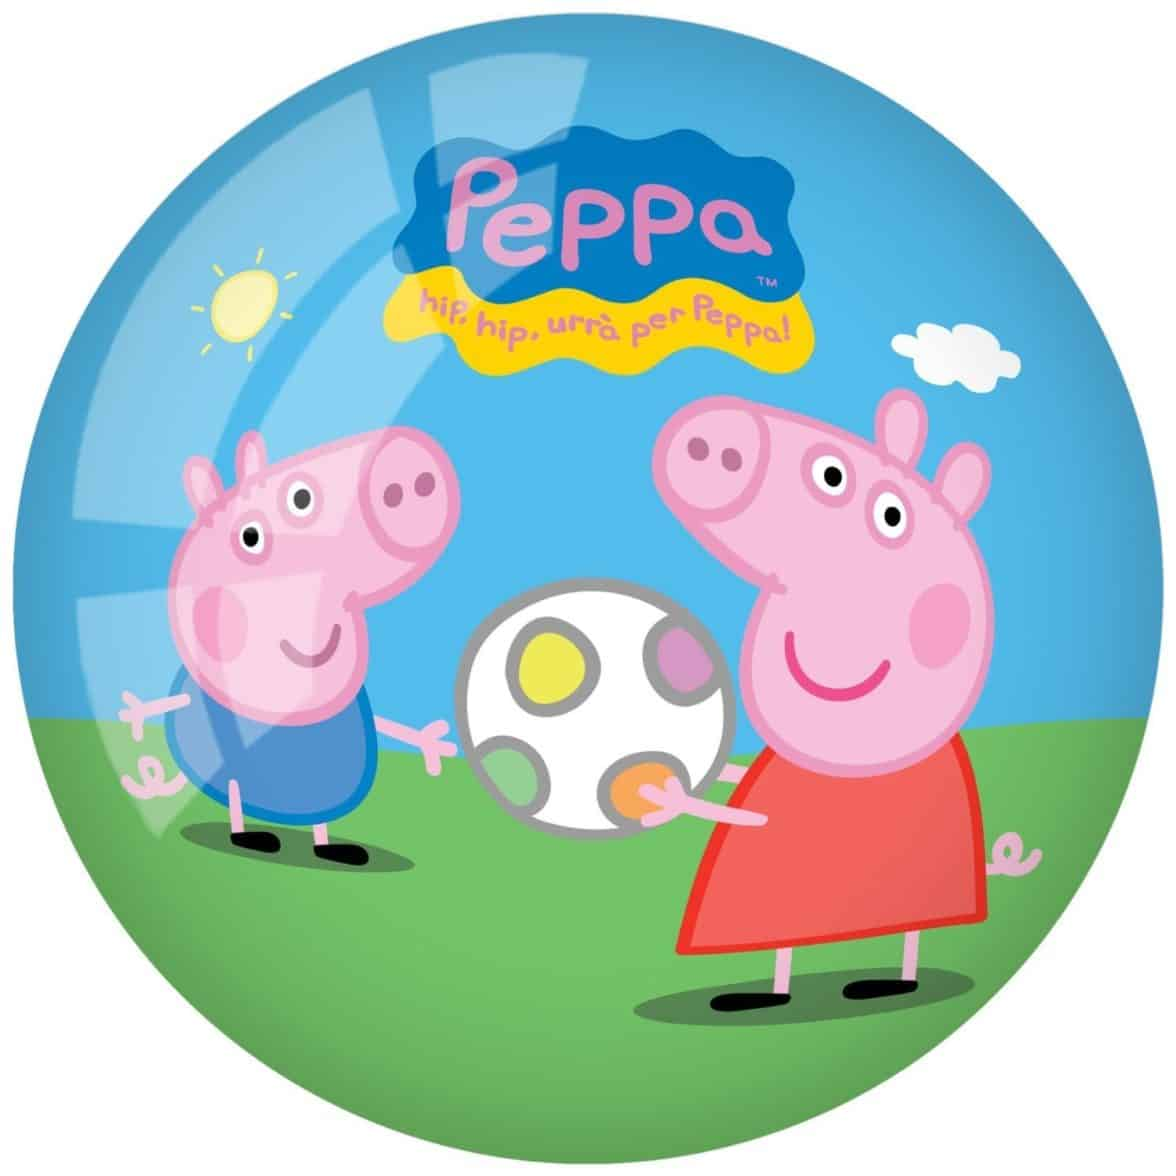 9 Inch Peppa Pig Play Ball - Peppa Pig Toys (BT187) [Toy]